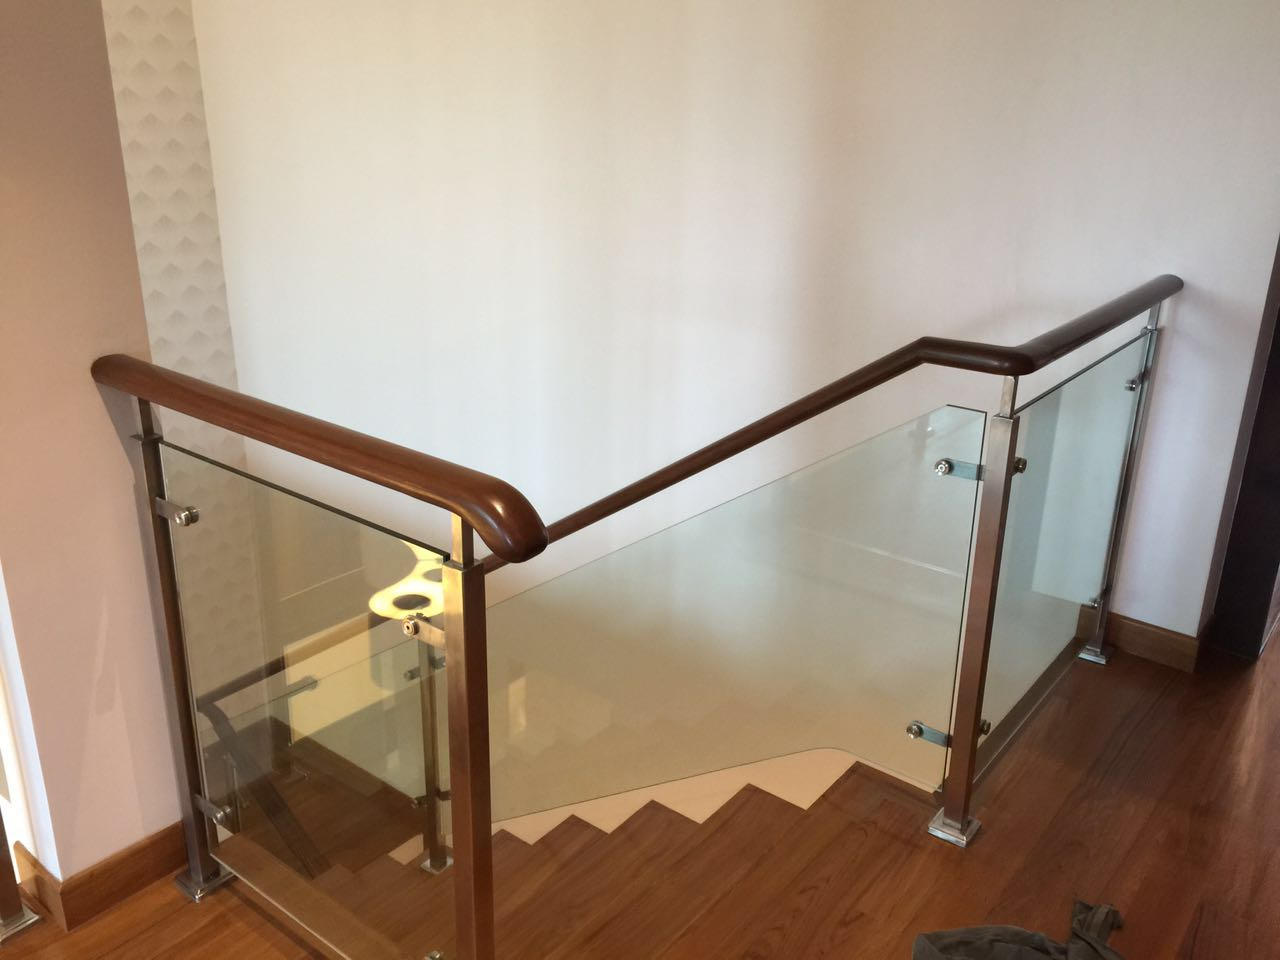 Stainless Steel Staircase With Wooden Handrail